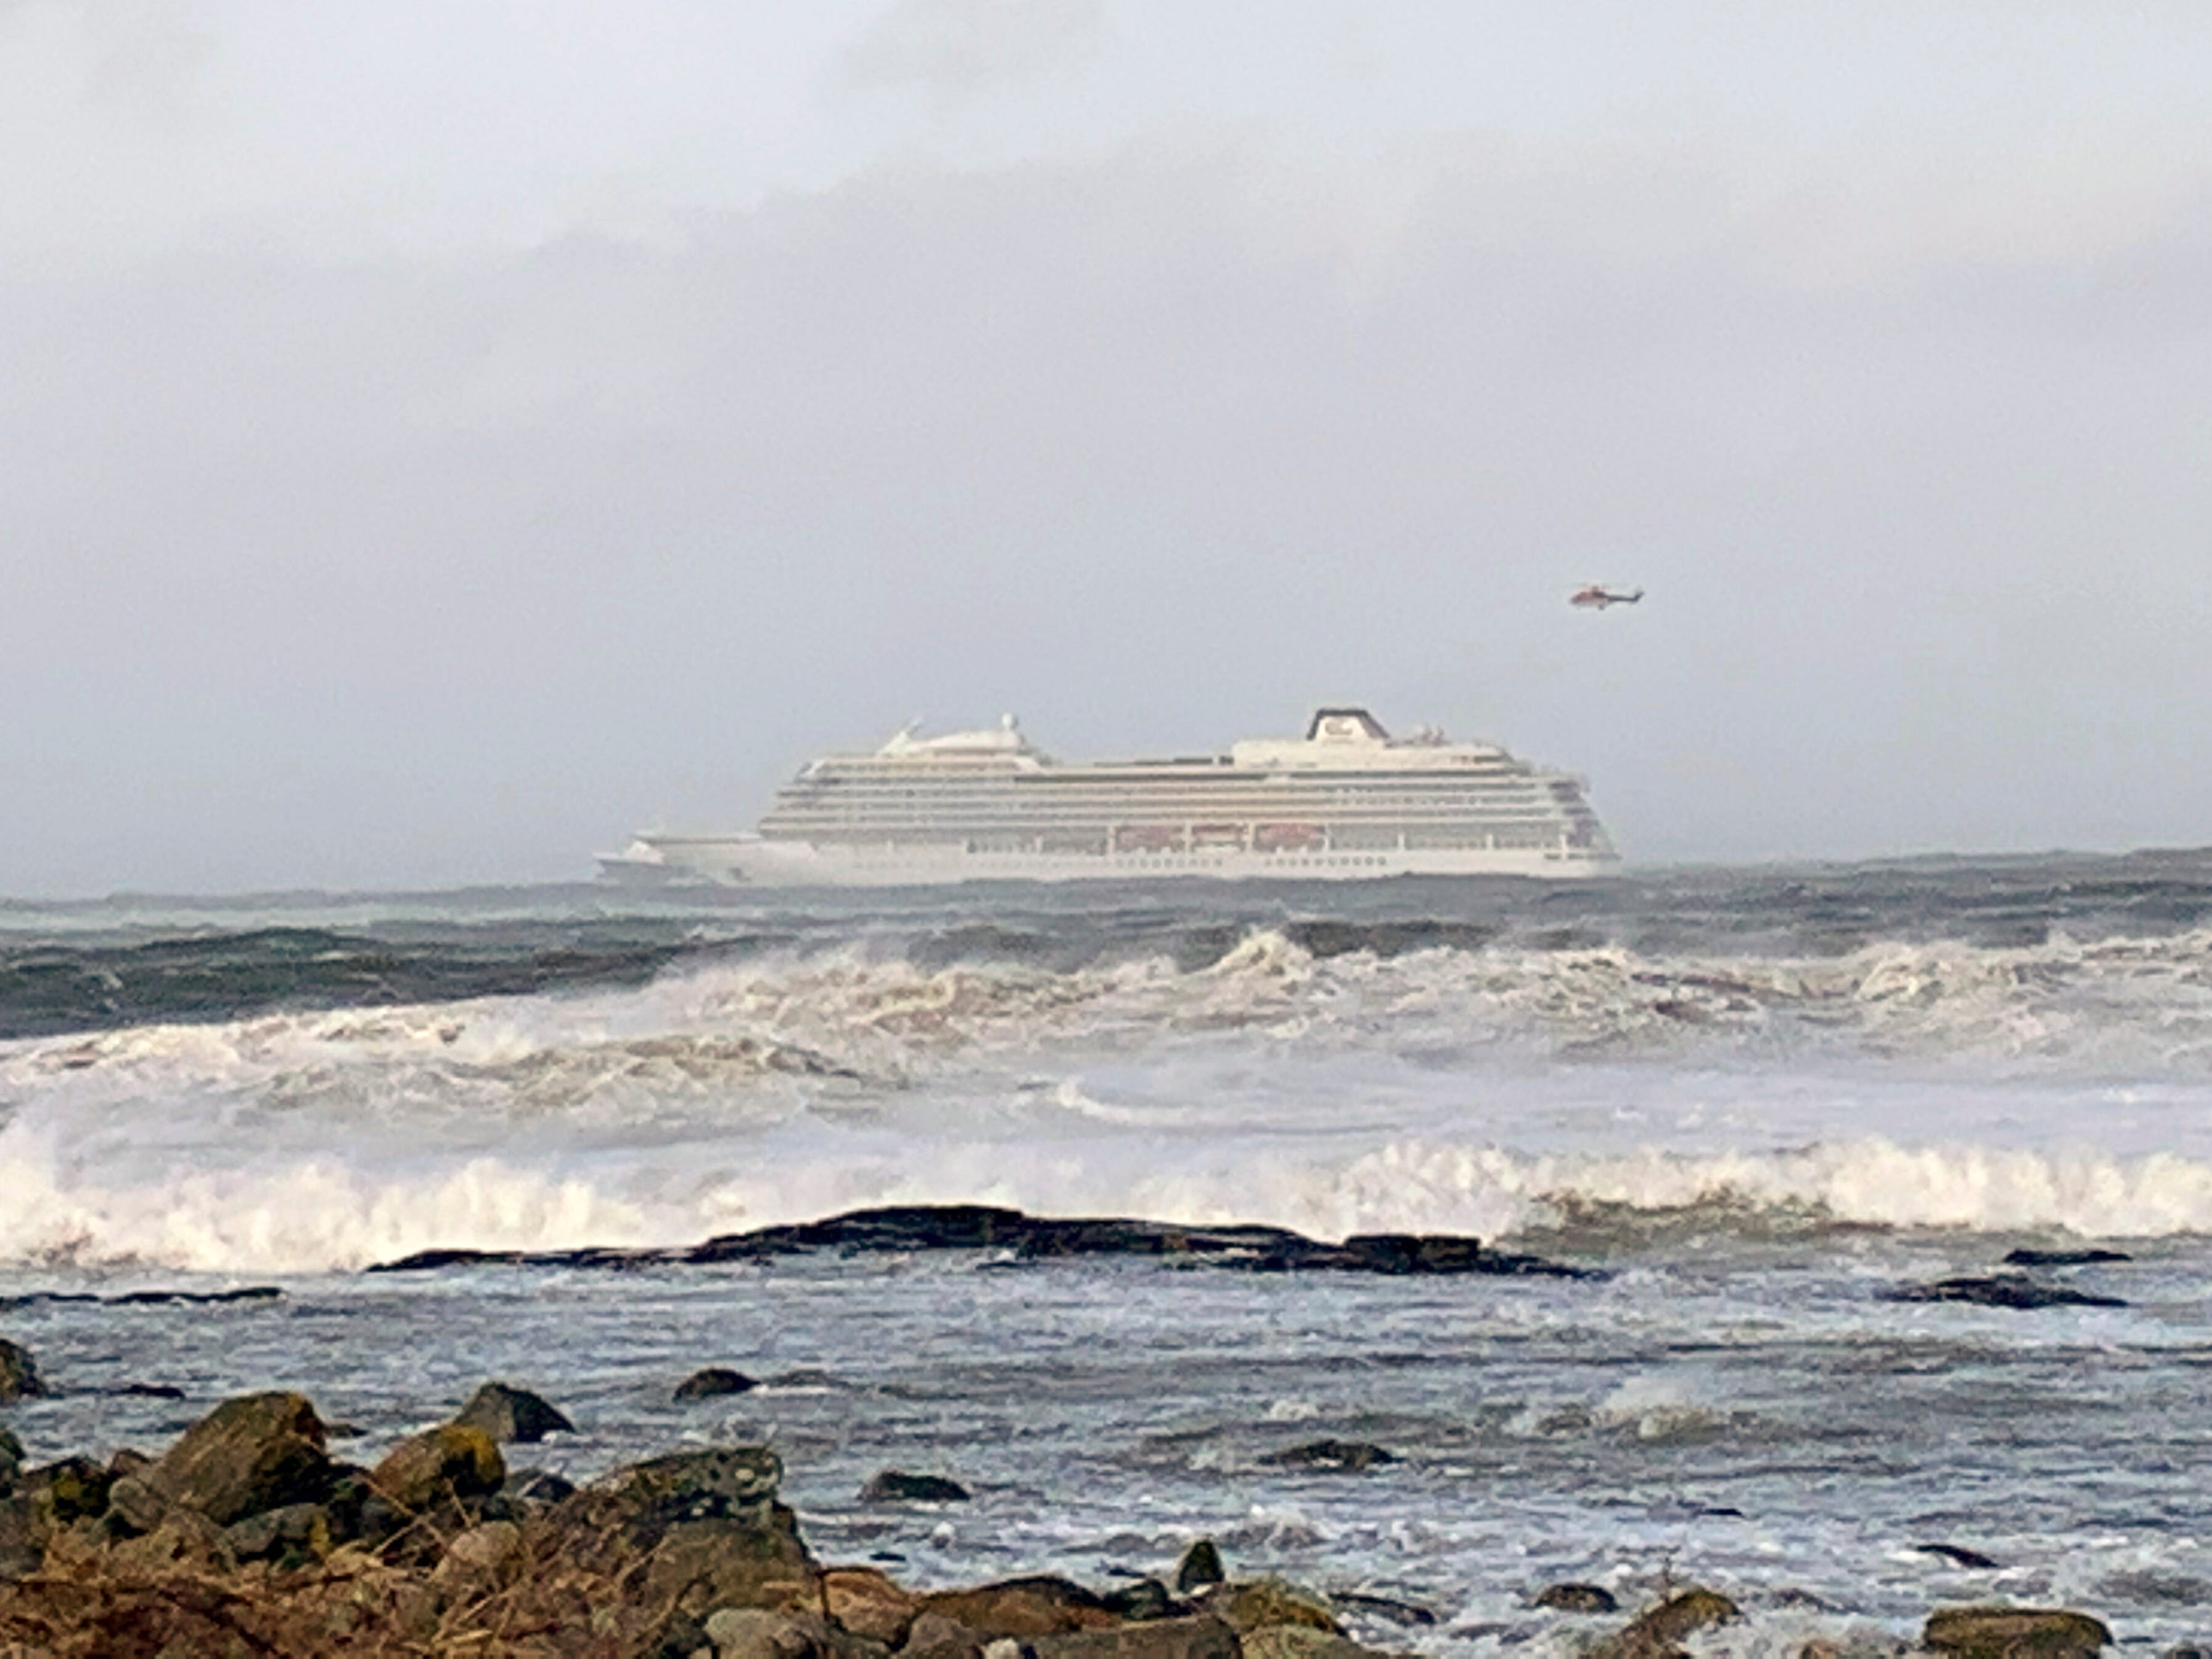 The Viking Sky airlifted more than half its 900 passengers to safety.